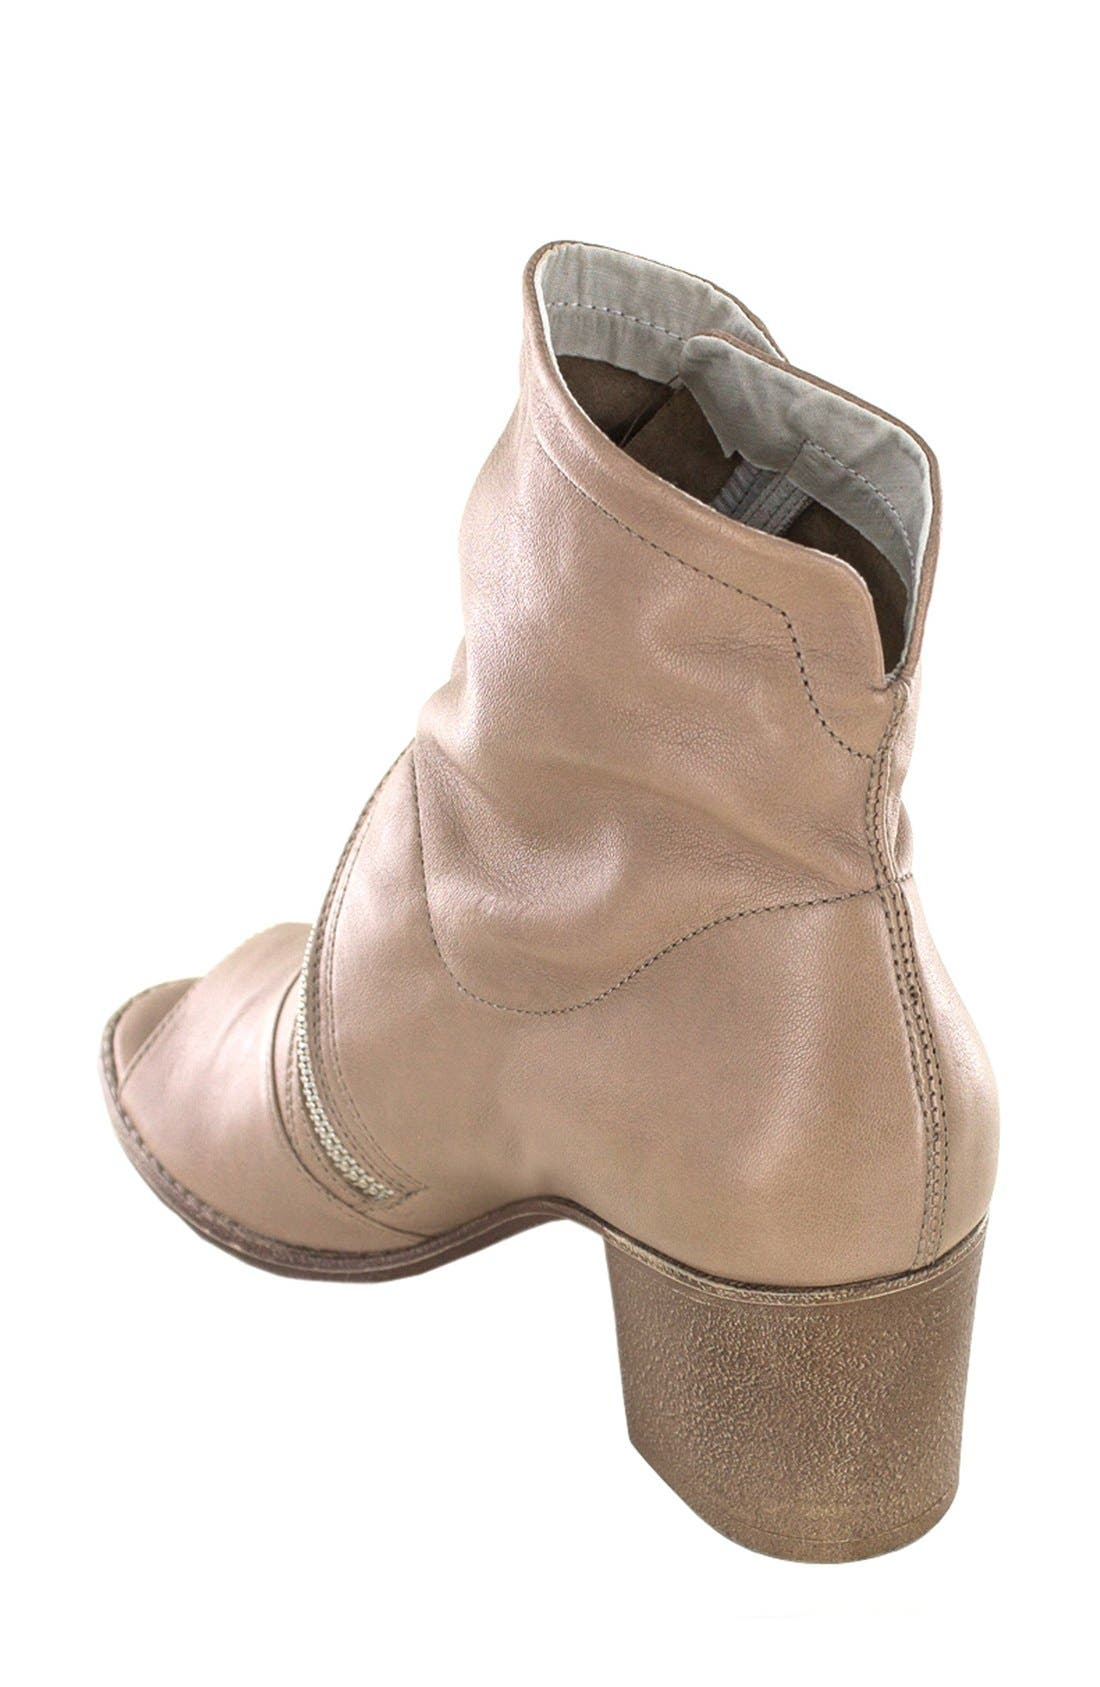 'Fantasia' Open Toe Bootie,                             Alternate thumbnail 2, color,                             252